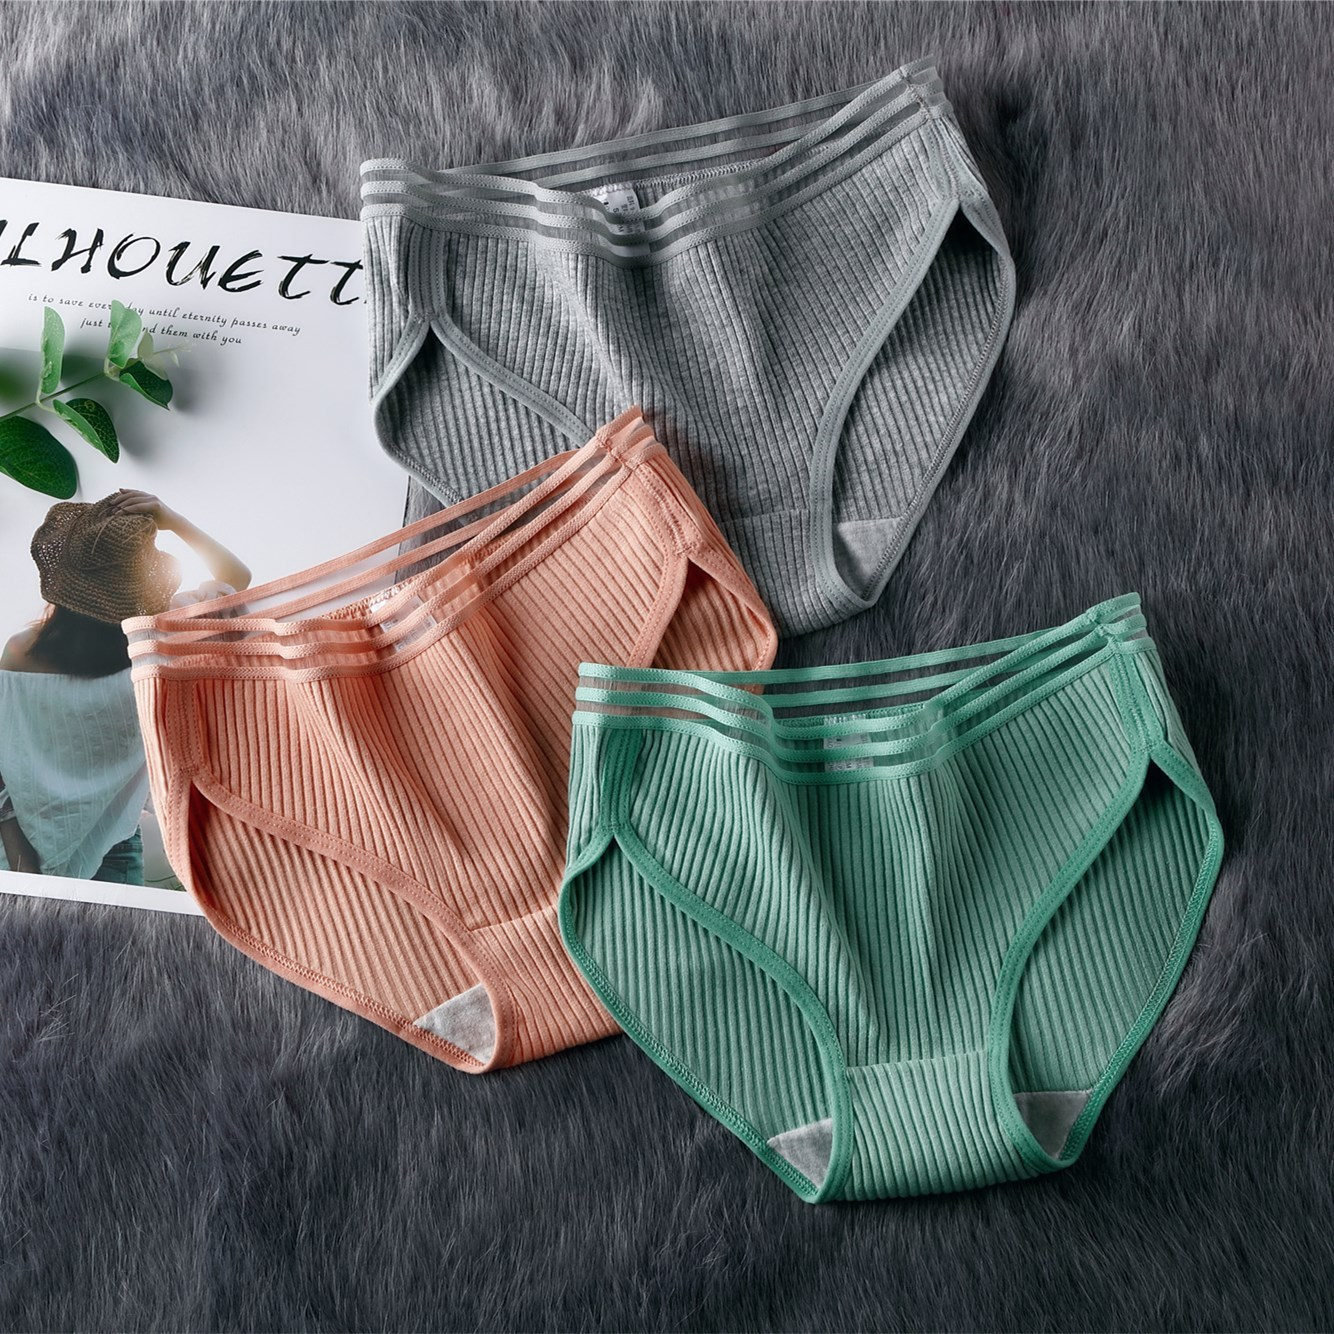 Panties for women cotton underwear letters sexy lingerie female casual briefs ladies underpants girl panty Lingerie Intimates